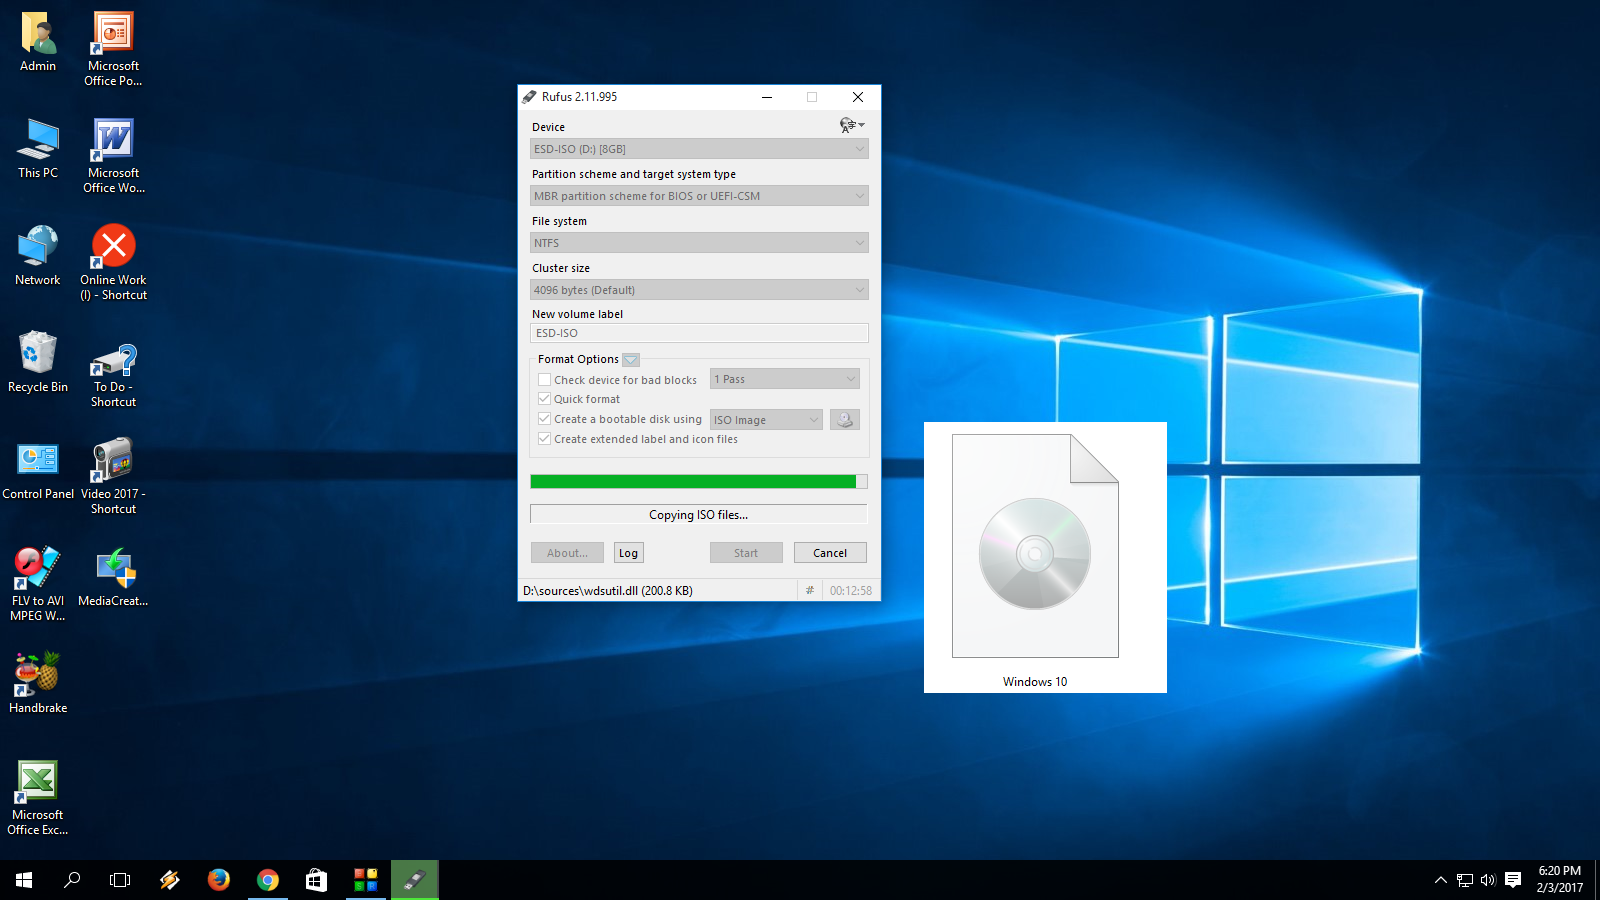 Learn New Things: How to Download Windows 10 ISO File & Make